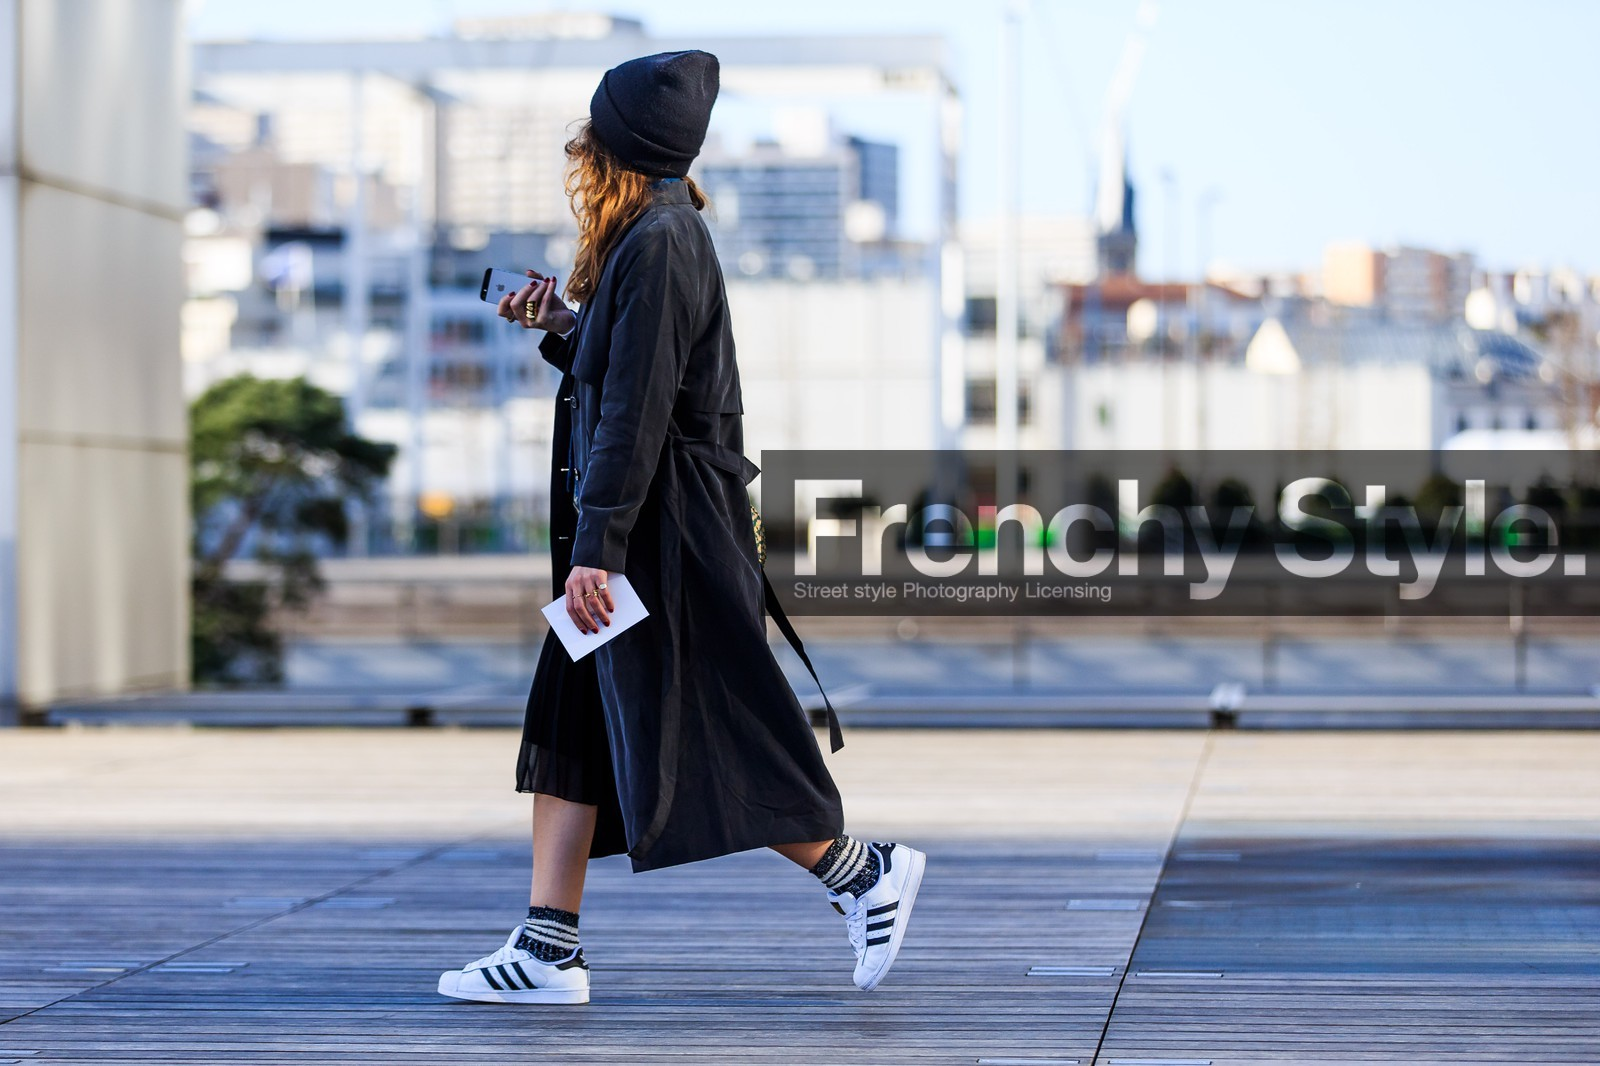 By Frenchy Jonathan Style Paciullo Street jpg 1502p0012 IfFqZZ